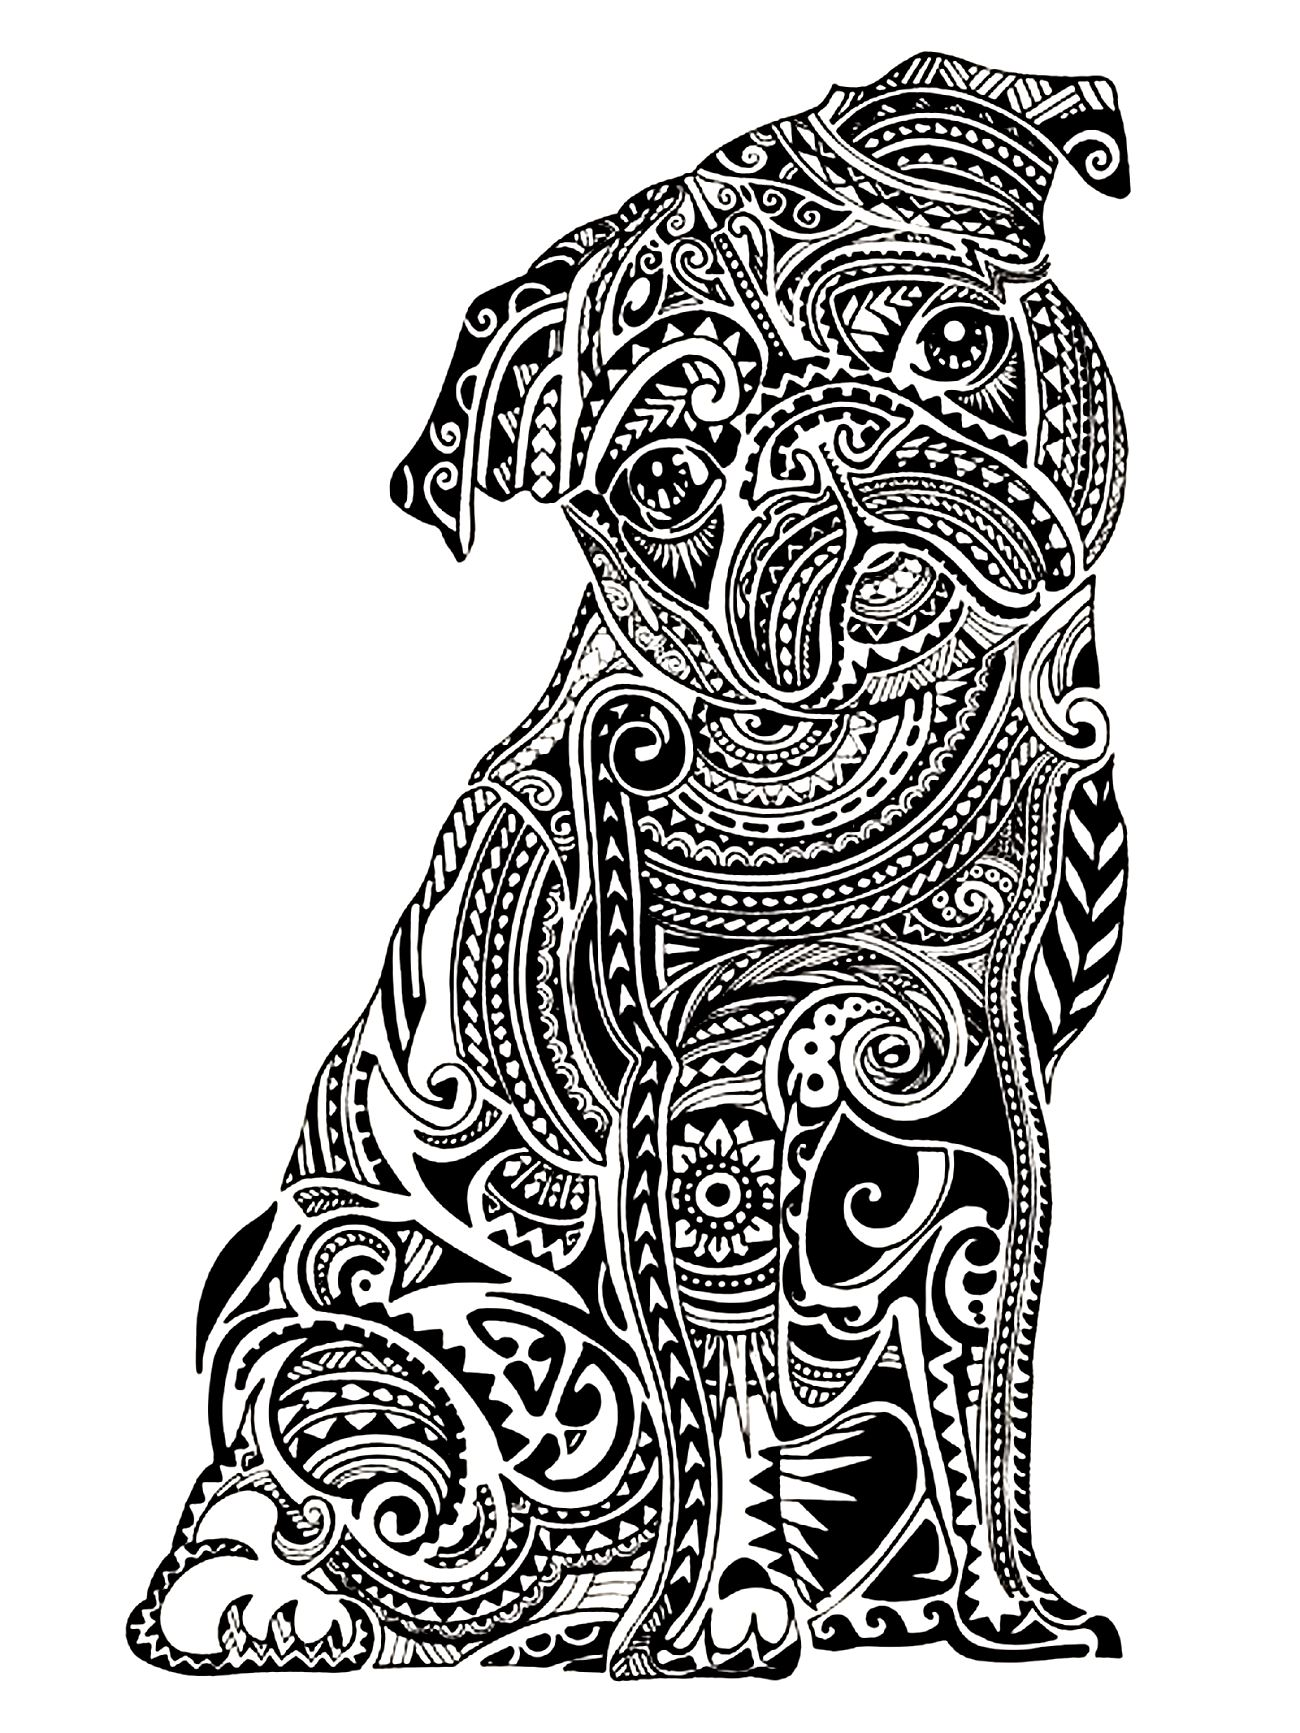 coloring pages for adults difficult coloring adult difficult little buldog a cute and young bulldog